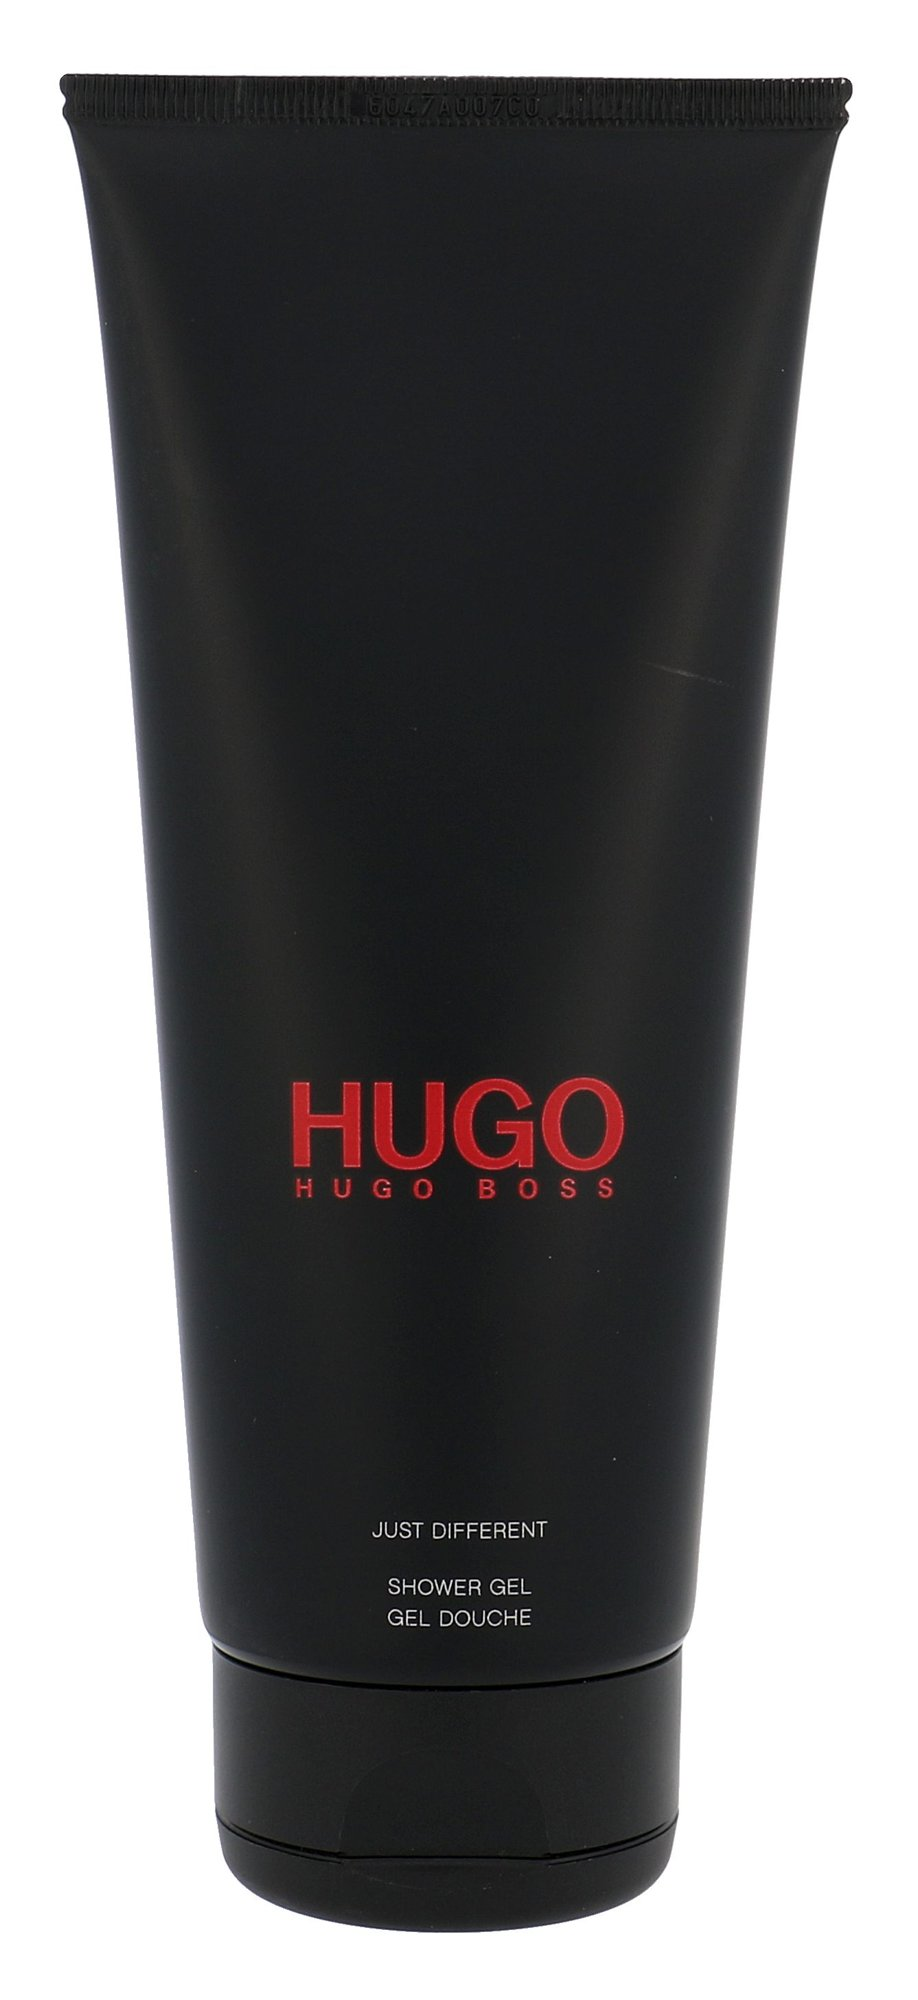 HUGO BOSS Hugo Just Different Shower gel 200ml